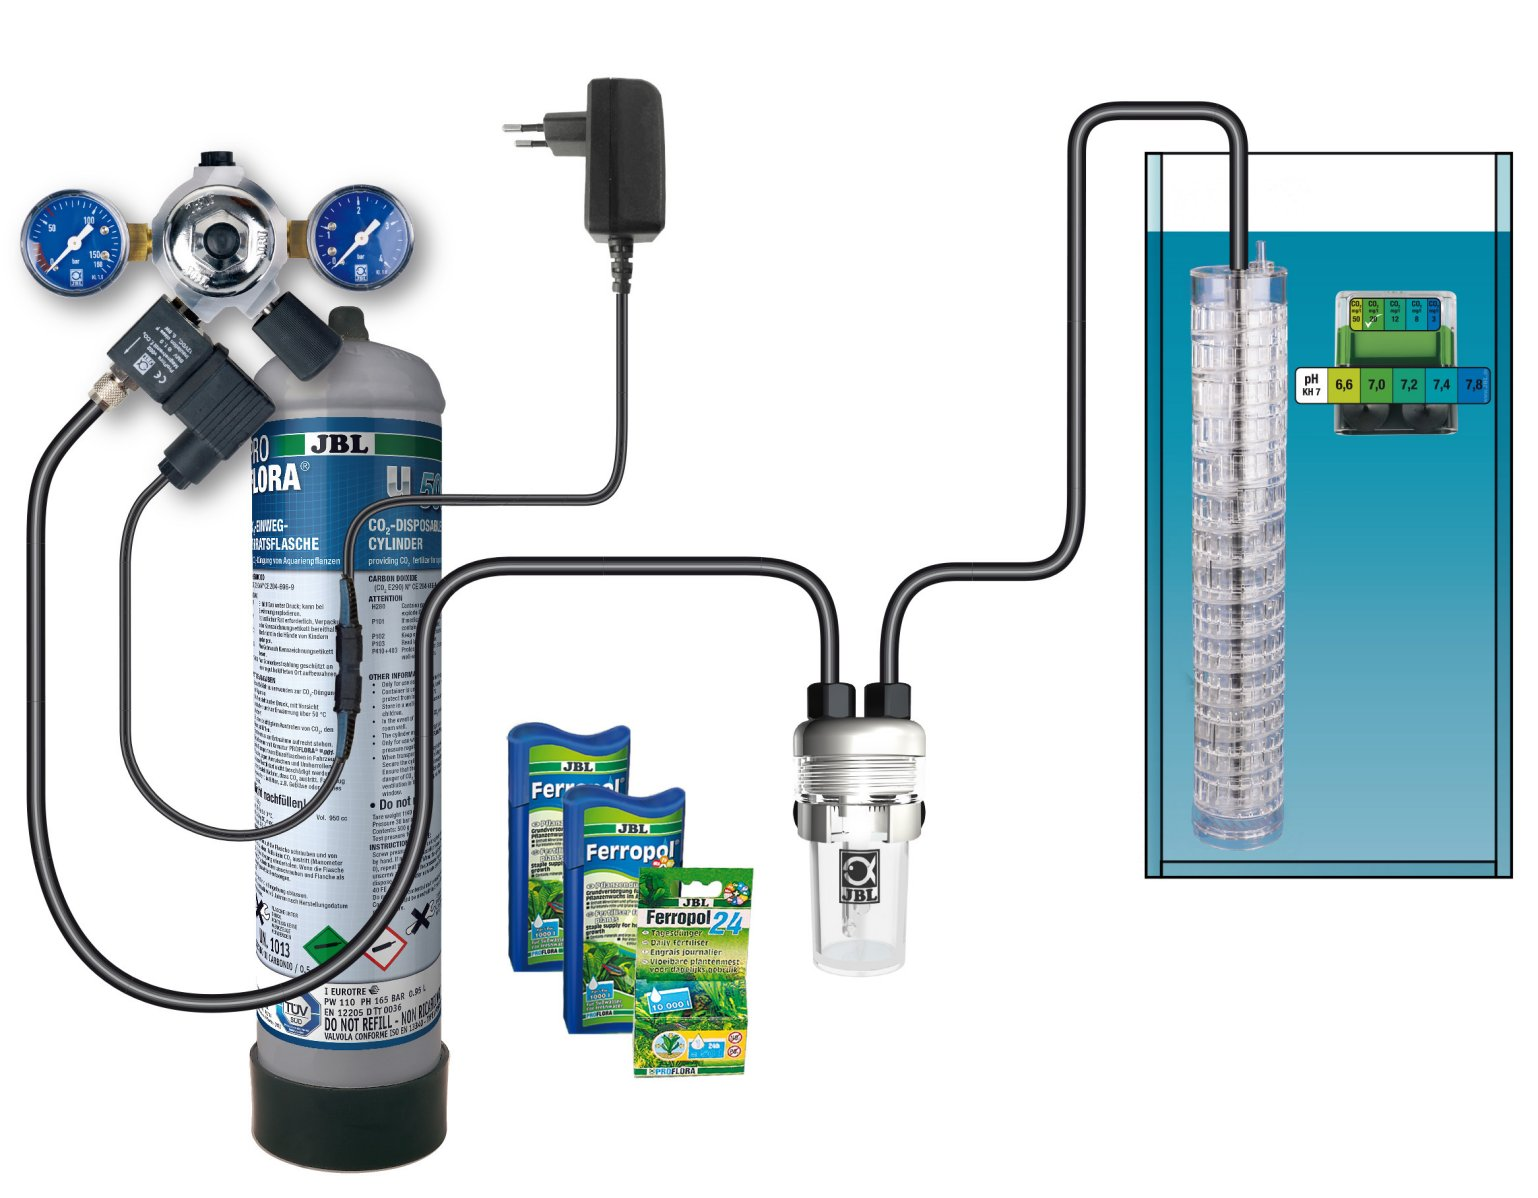 Jbl proflora u502 co2 complete system for Jbl aquarium